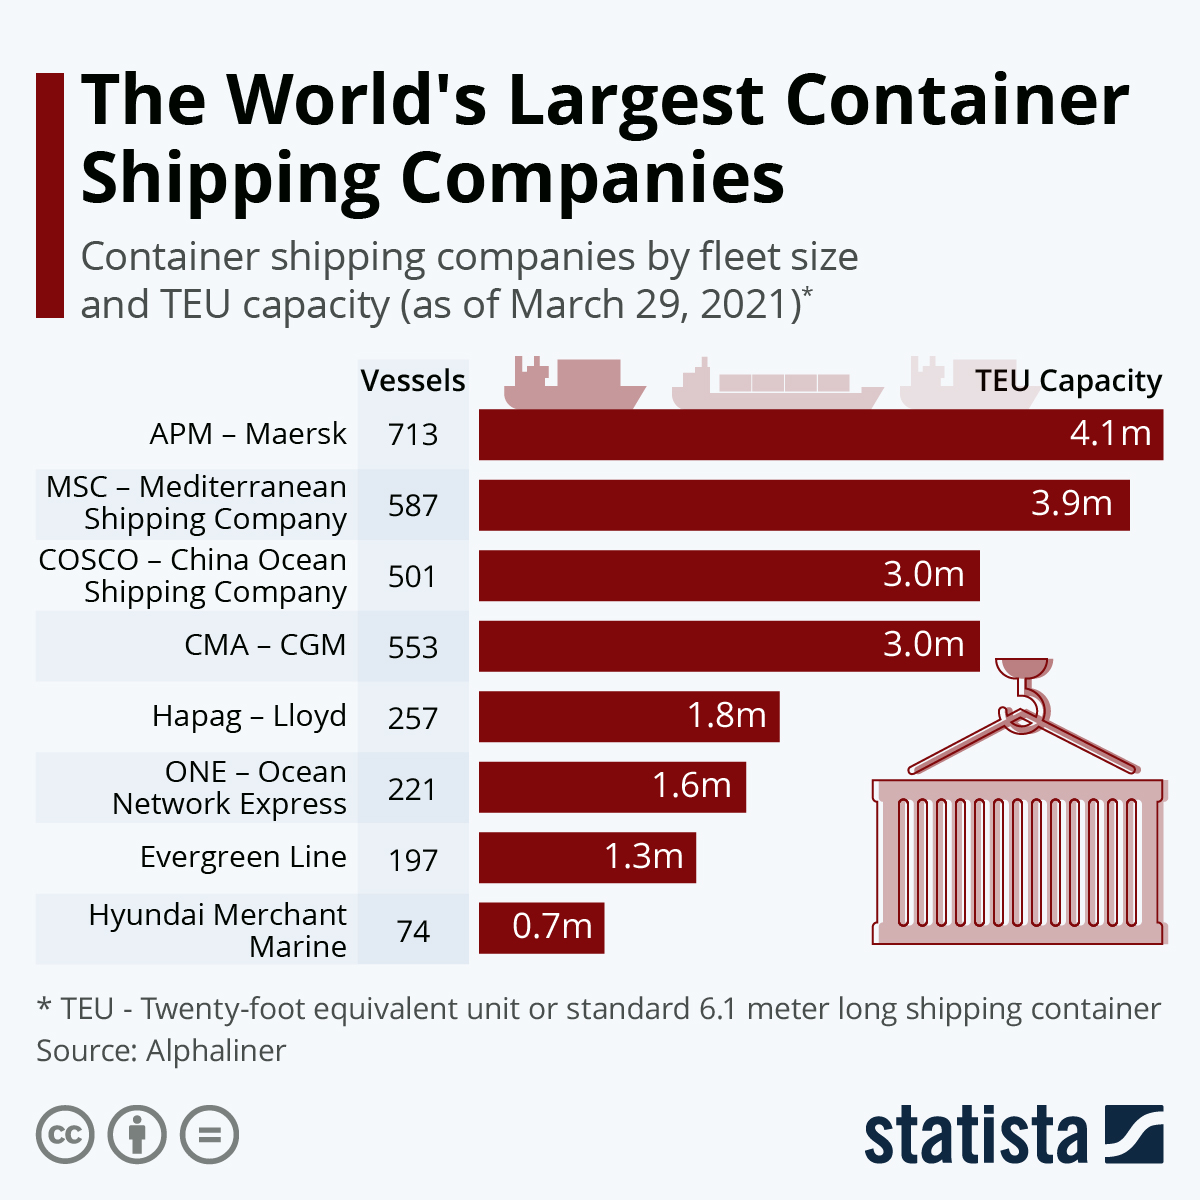 The world's largest container shipping company